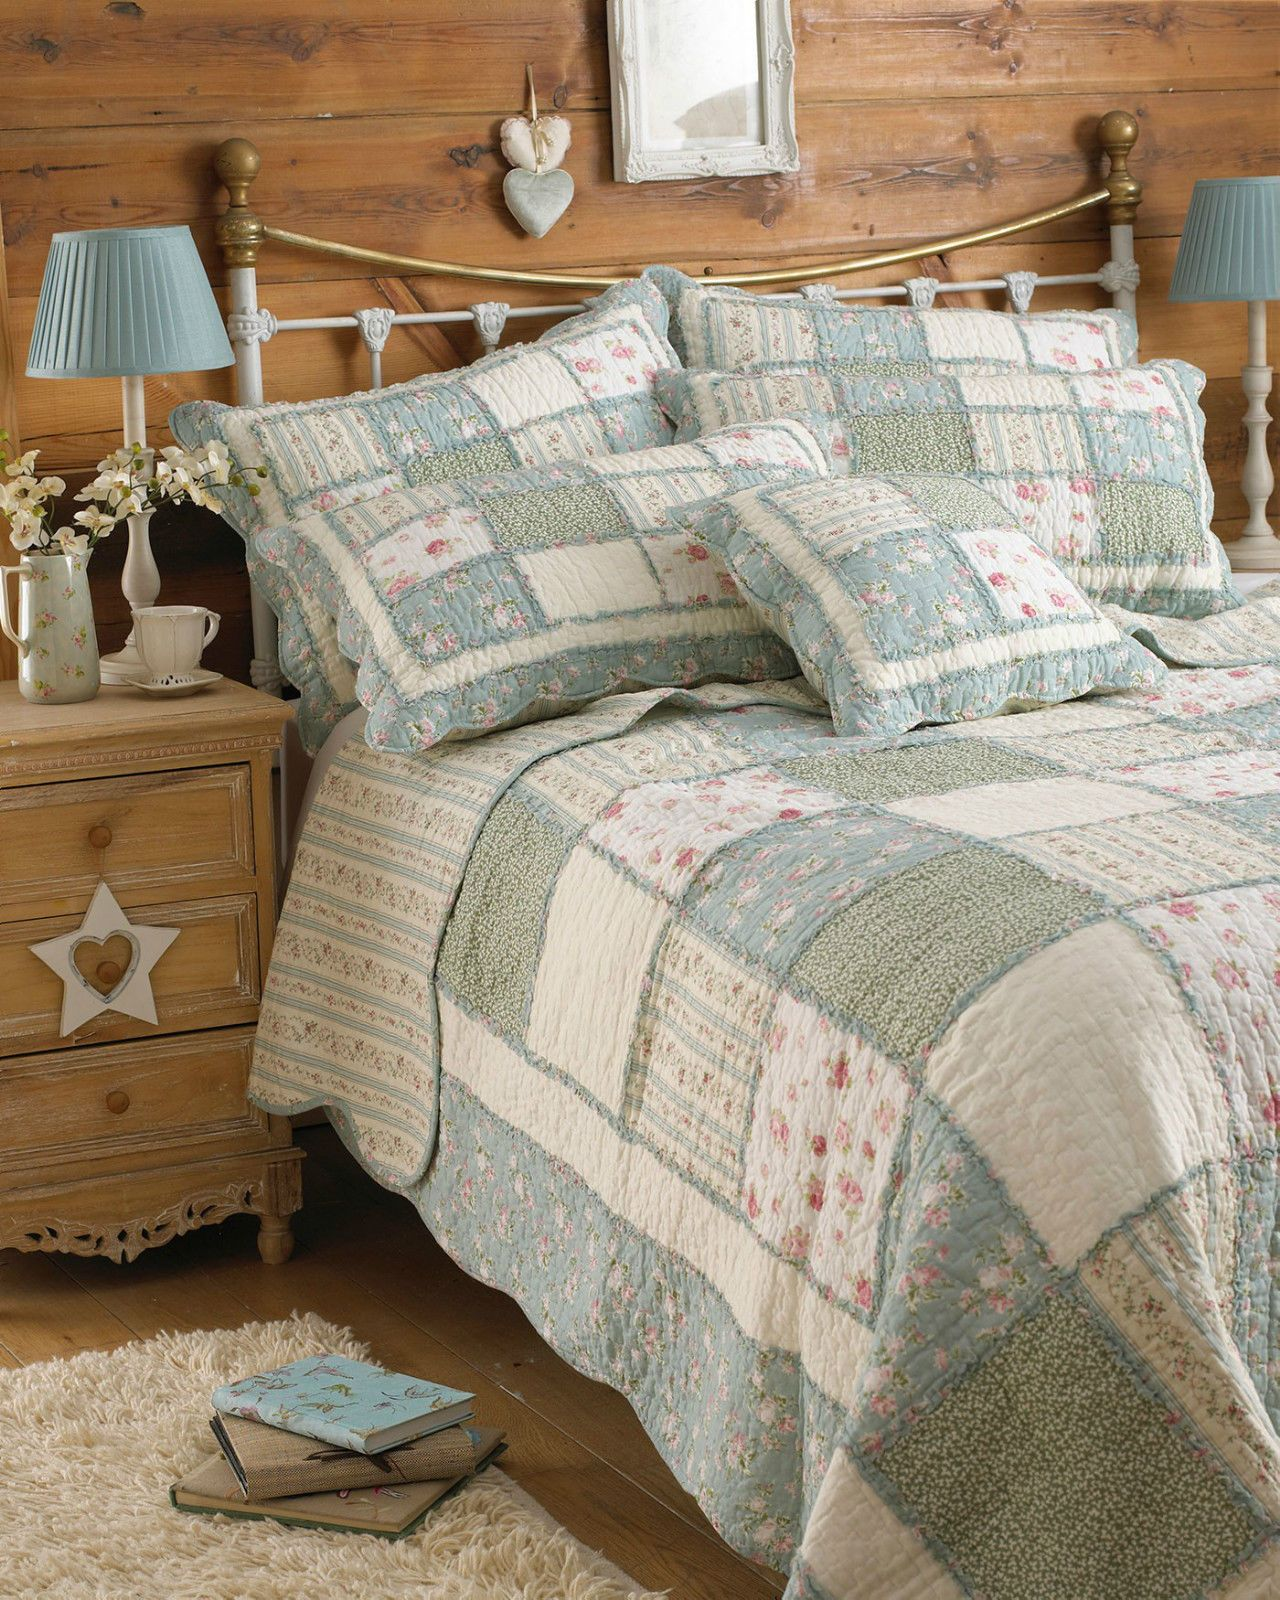 Patchwork Bedspread Throw 100 Cotton Quilt Blanket Shabby Chic Duck Egg Blue Bed Spreads Quilted Bedspreads Bedding Shop